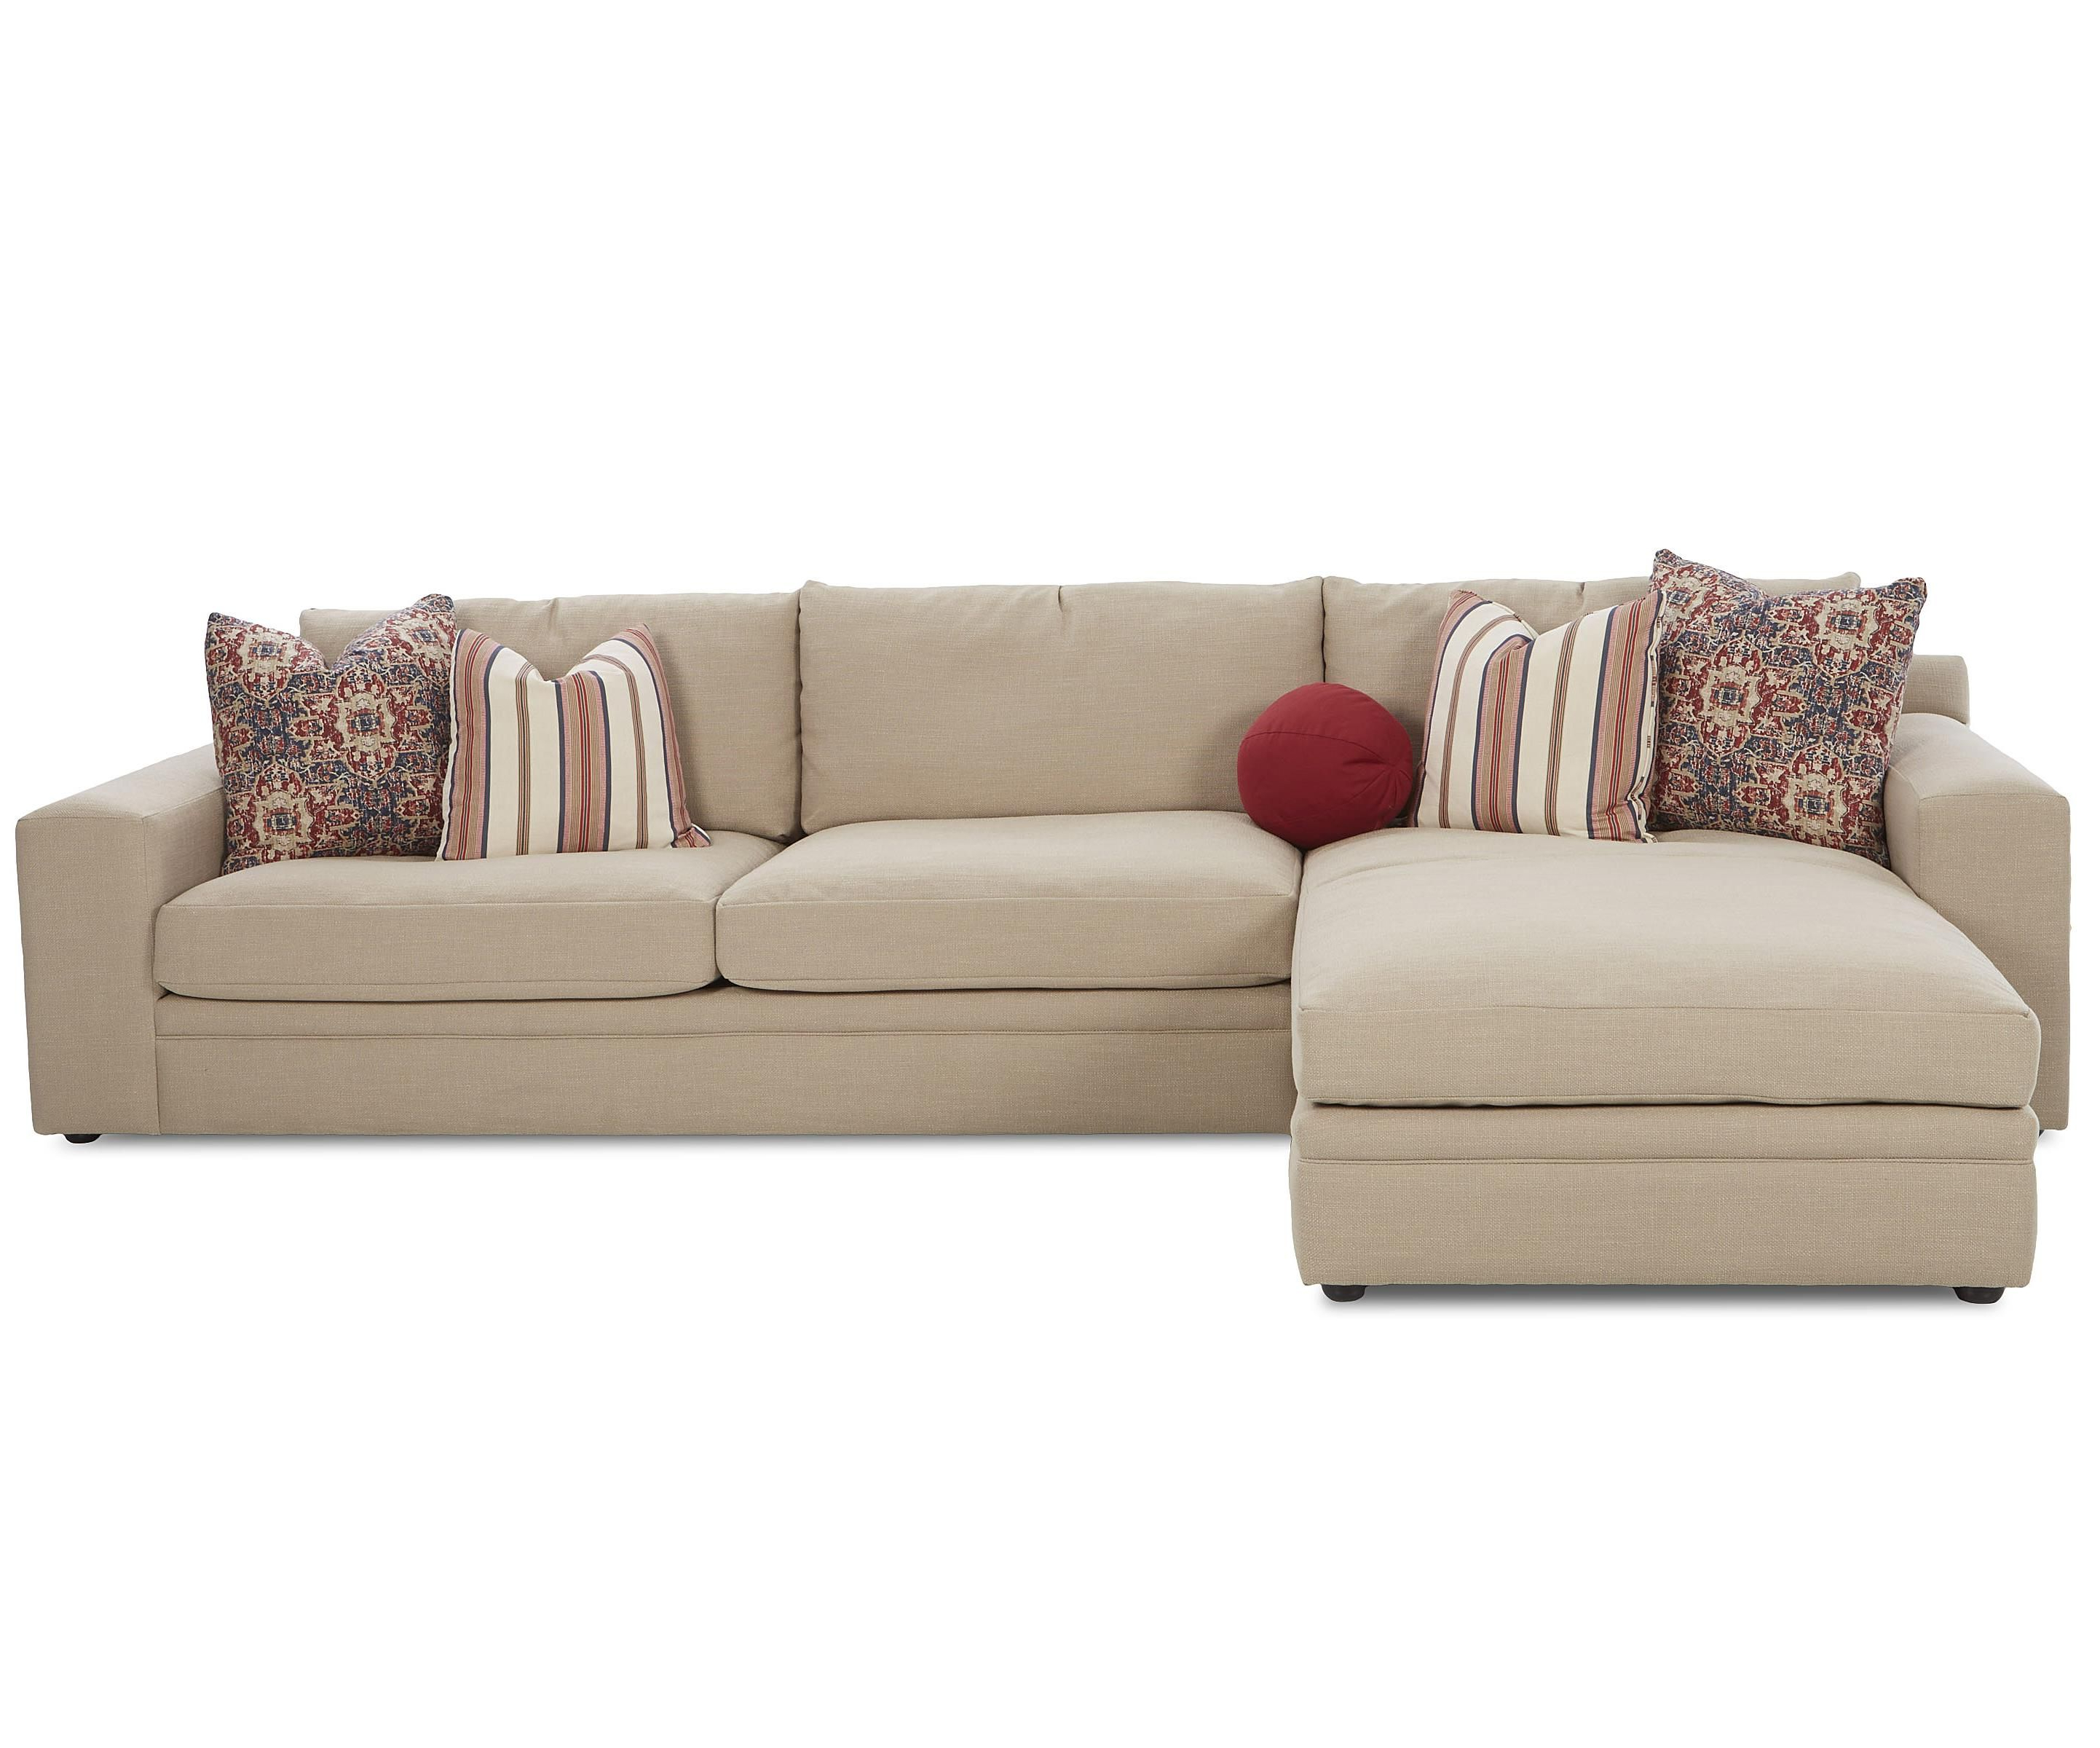 Fashionable Stylish Casual 3 Piece Sectional Sofa With Track Arms And Loose Back For Gordon 3 Piece Sectionals With Raf Chaise (View 6 of 20)